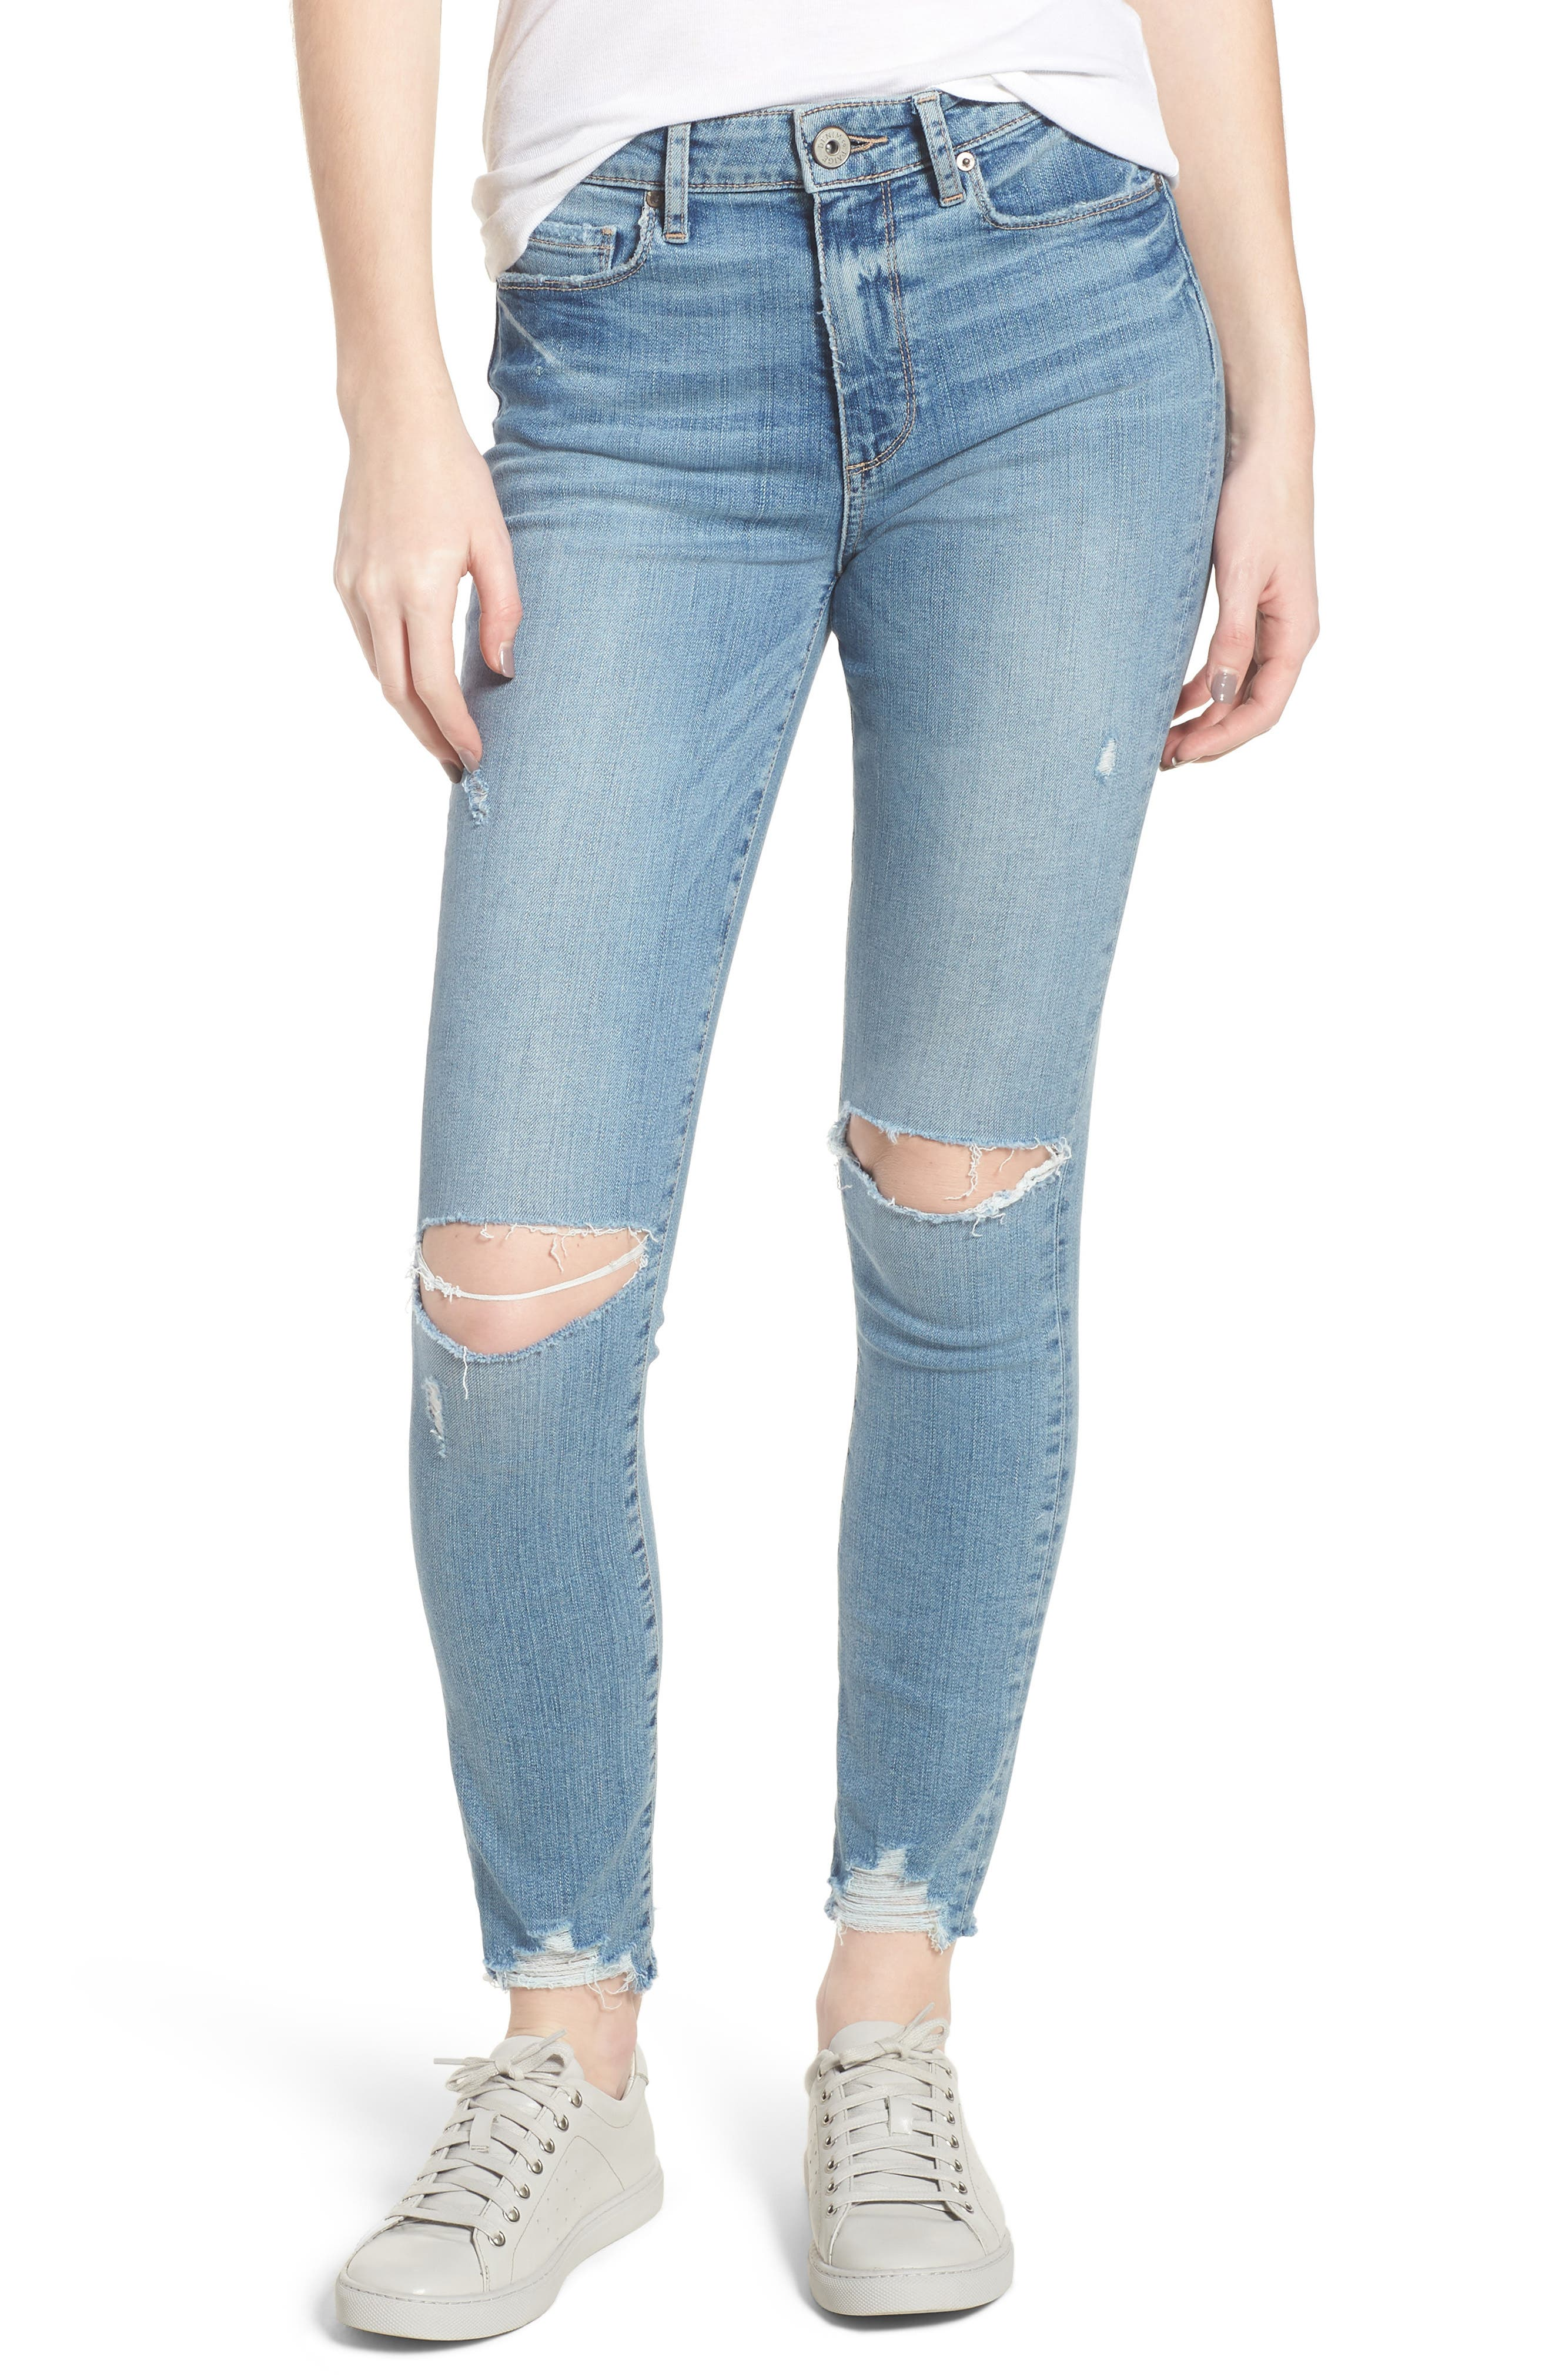 Hoxton High Waist Ankle Skinny Jeans,                         Main,                         color, Janis Destructed